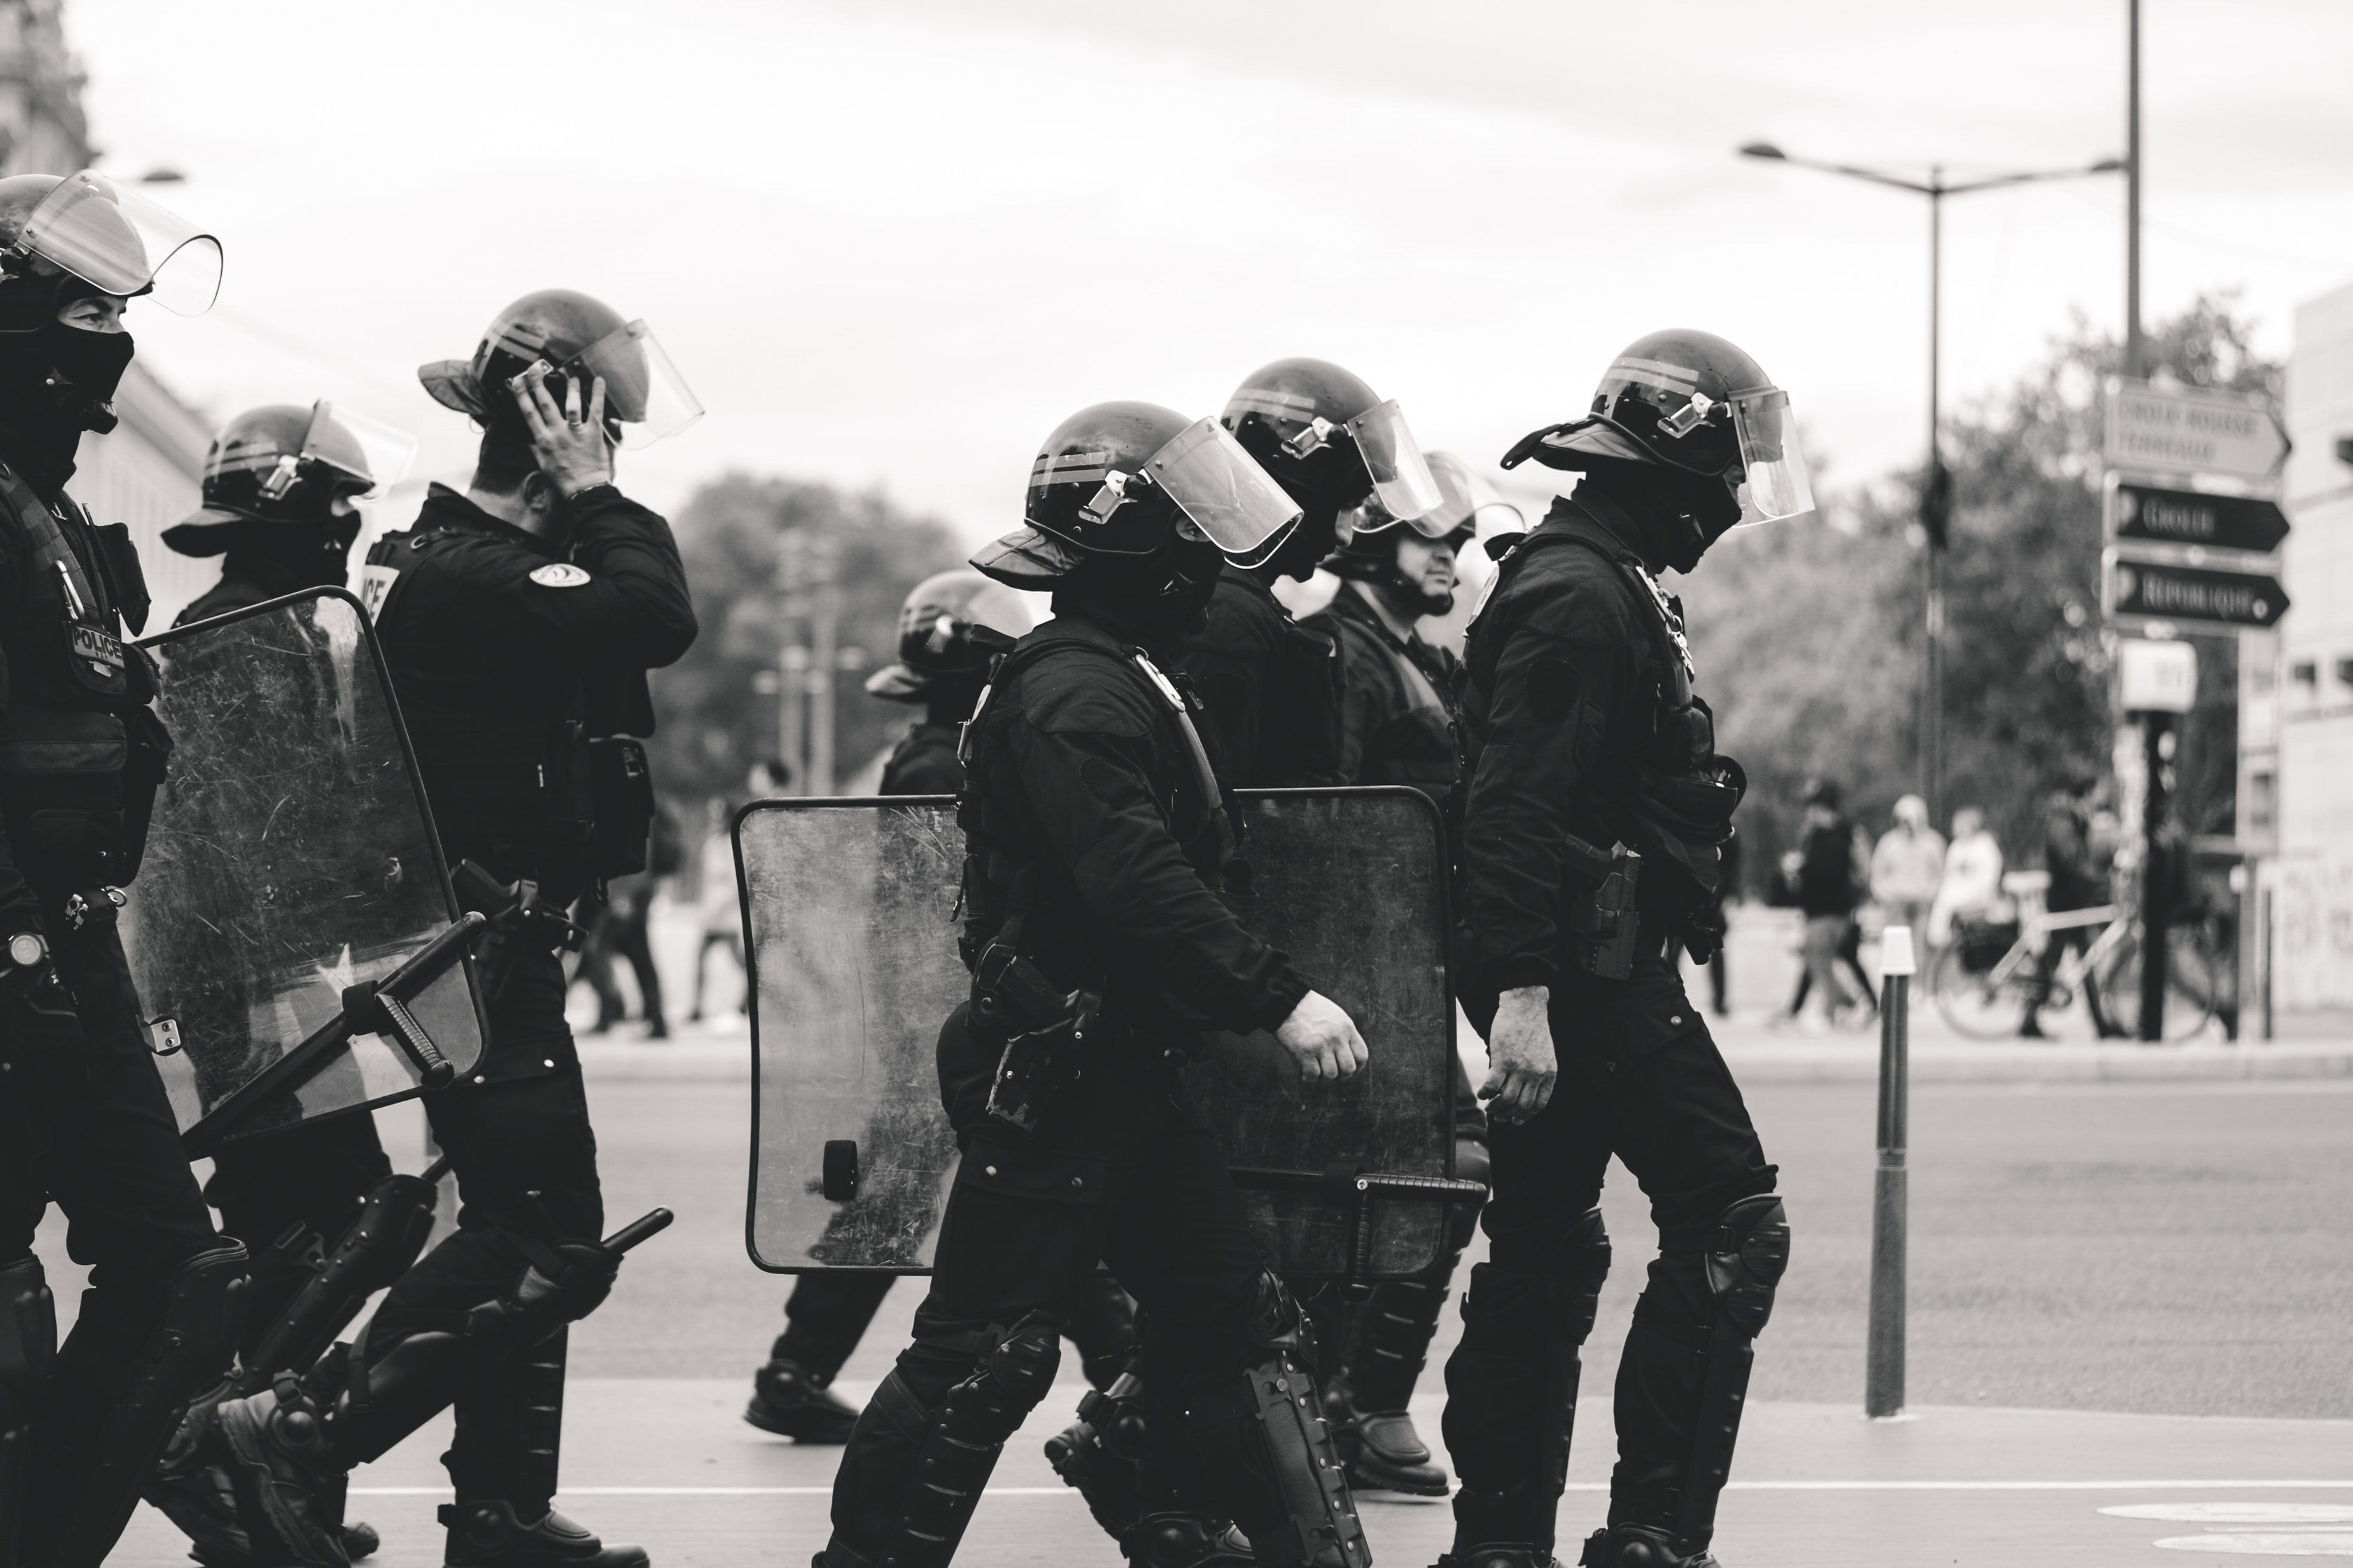 Police with riot gear on